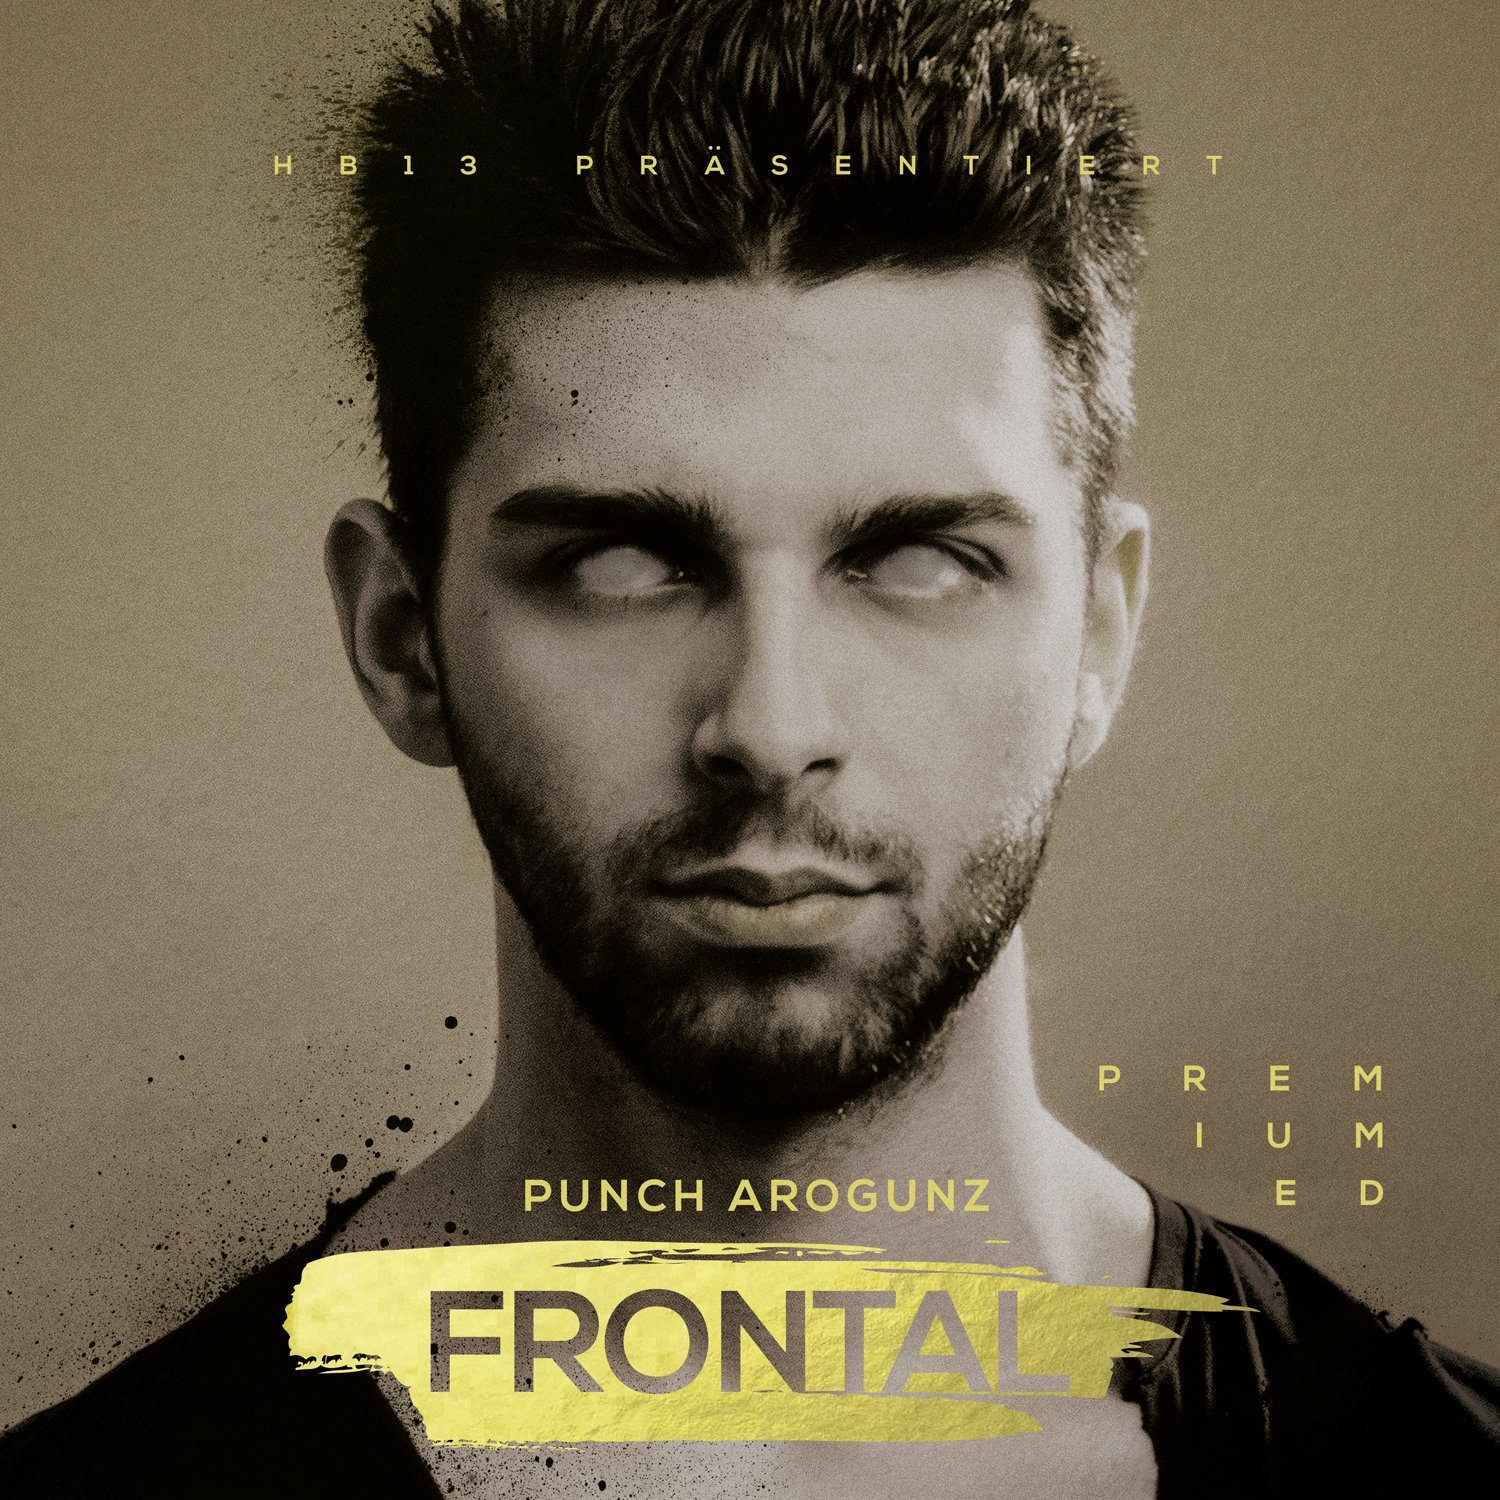 Punch Arogunz - Frontal (Cover)